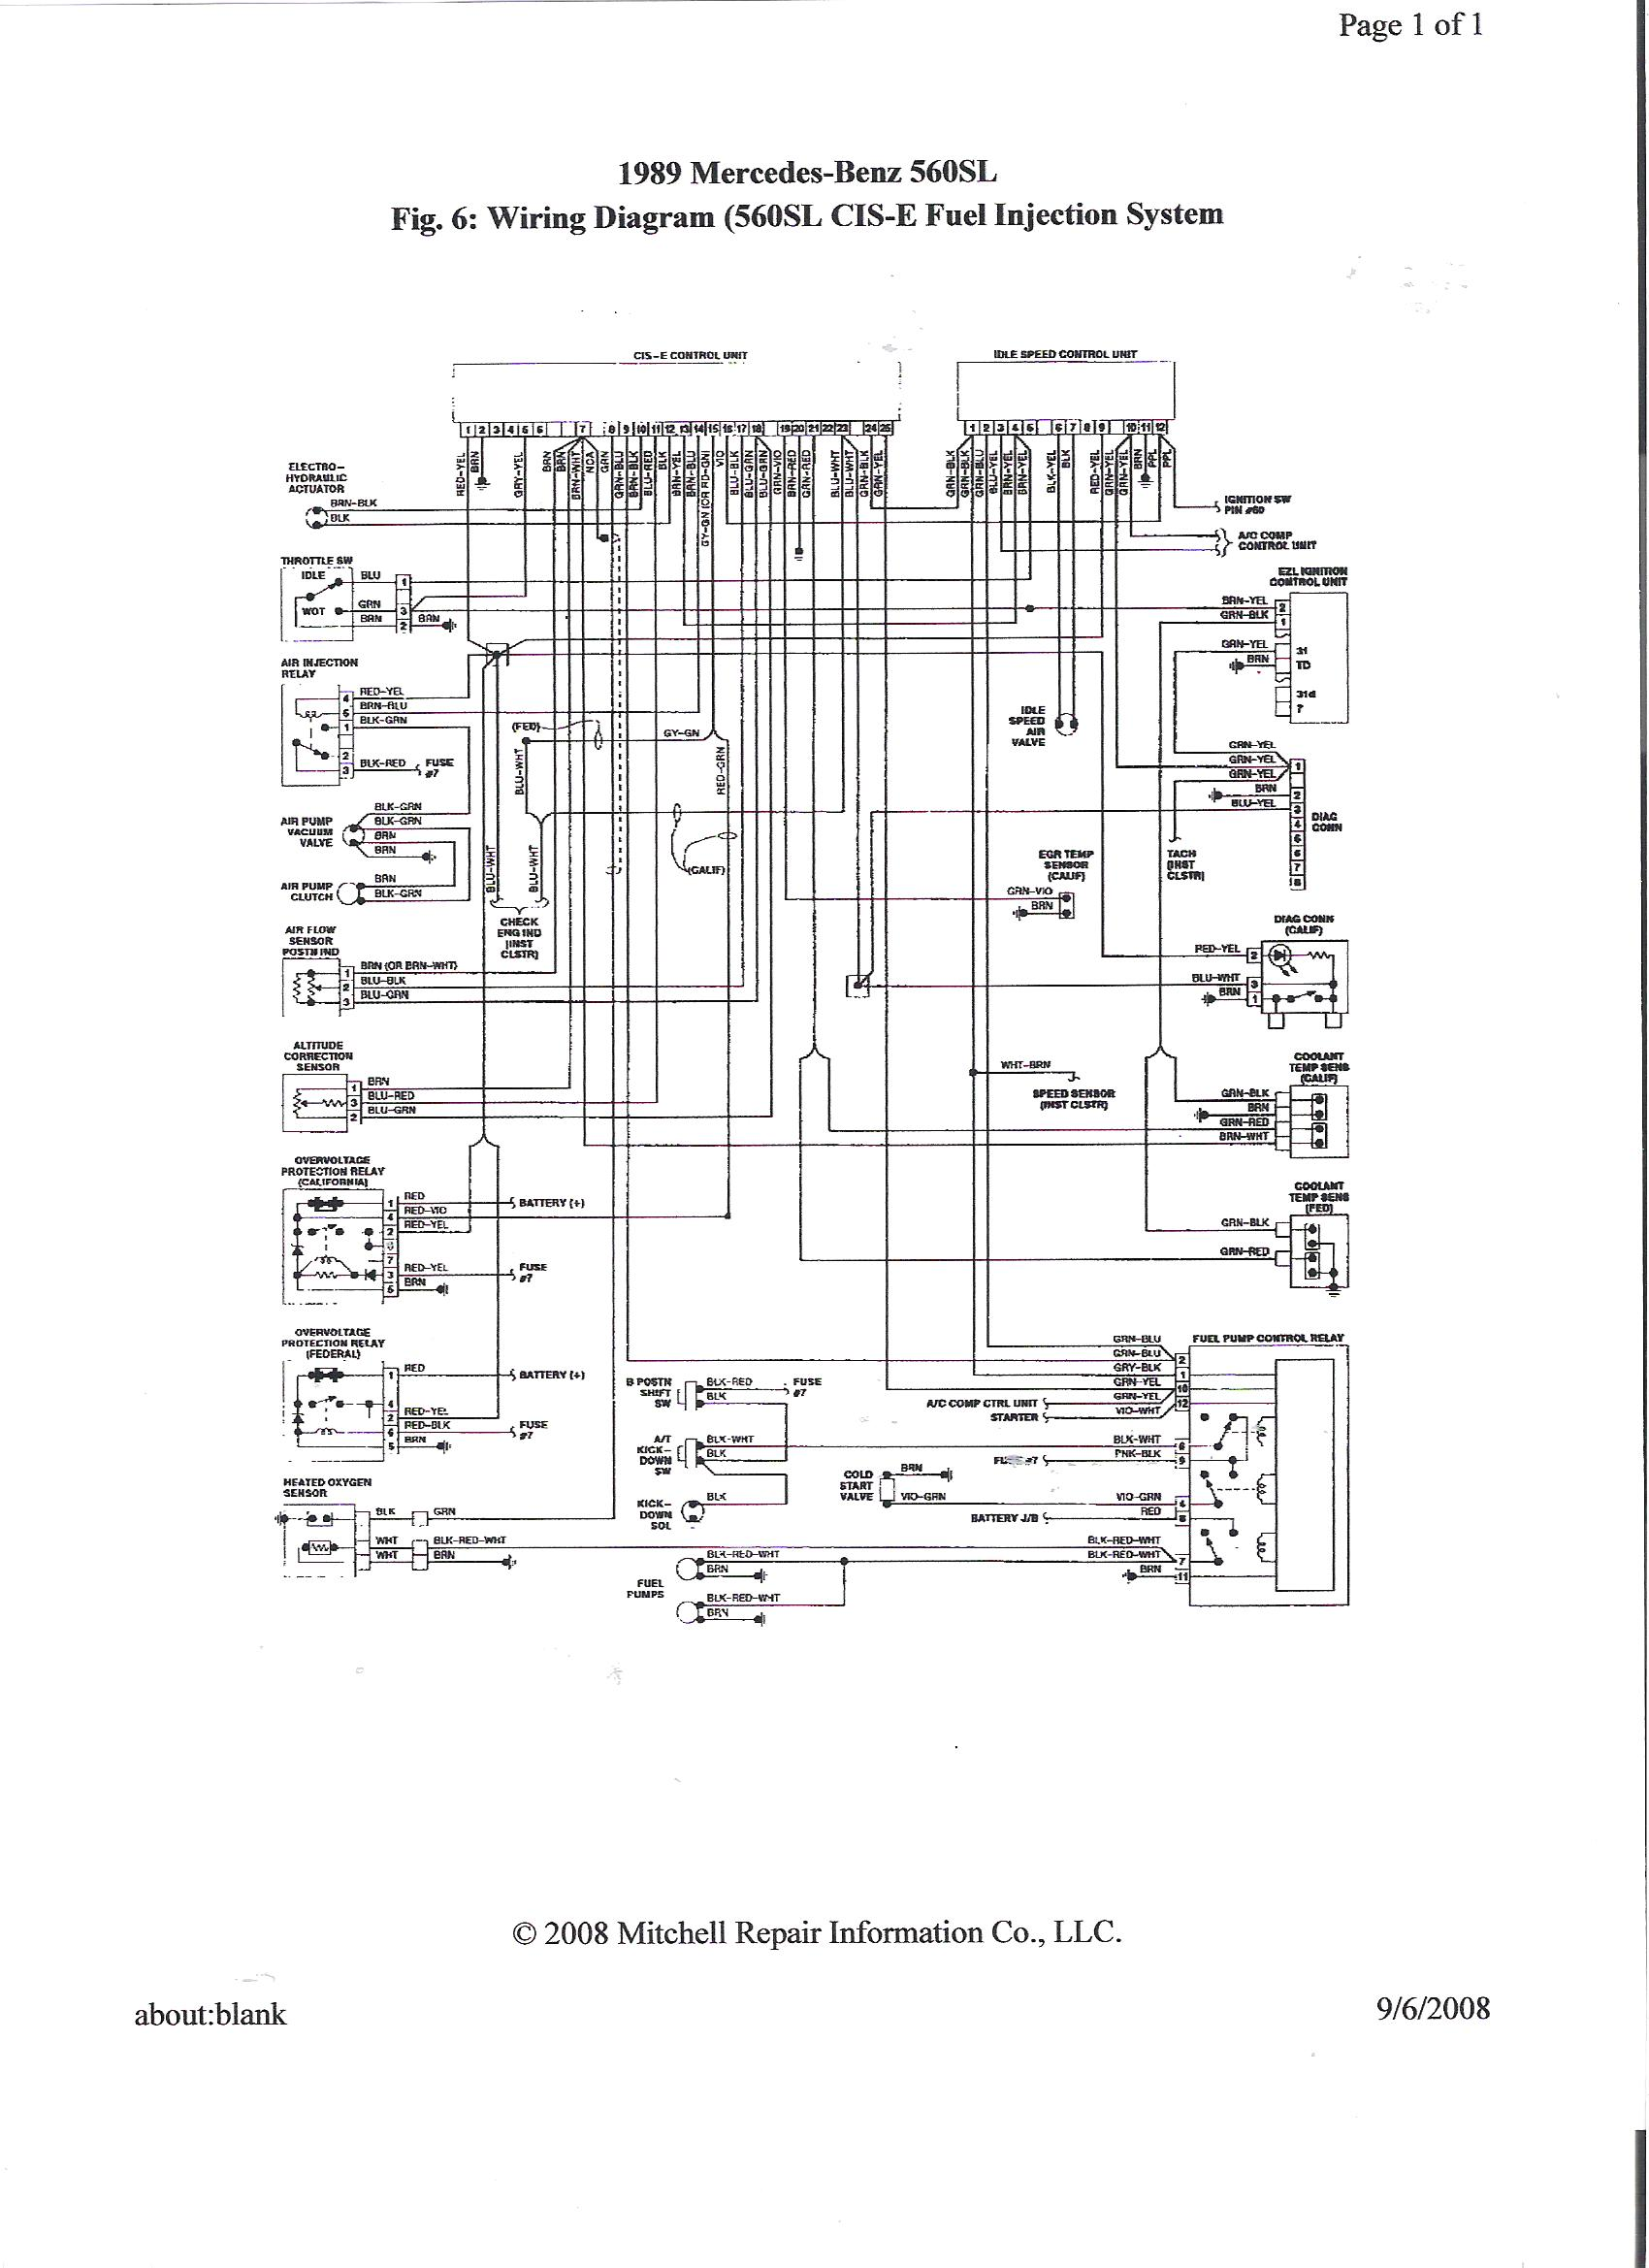 2008 09 06_161445_1989_560SL_wiring_001 wiring diagram 1989 mercedes benz sl560 readingrat net vw cis wiring diagram at aneh.co